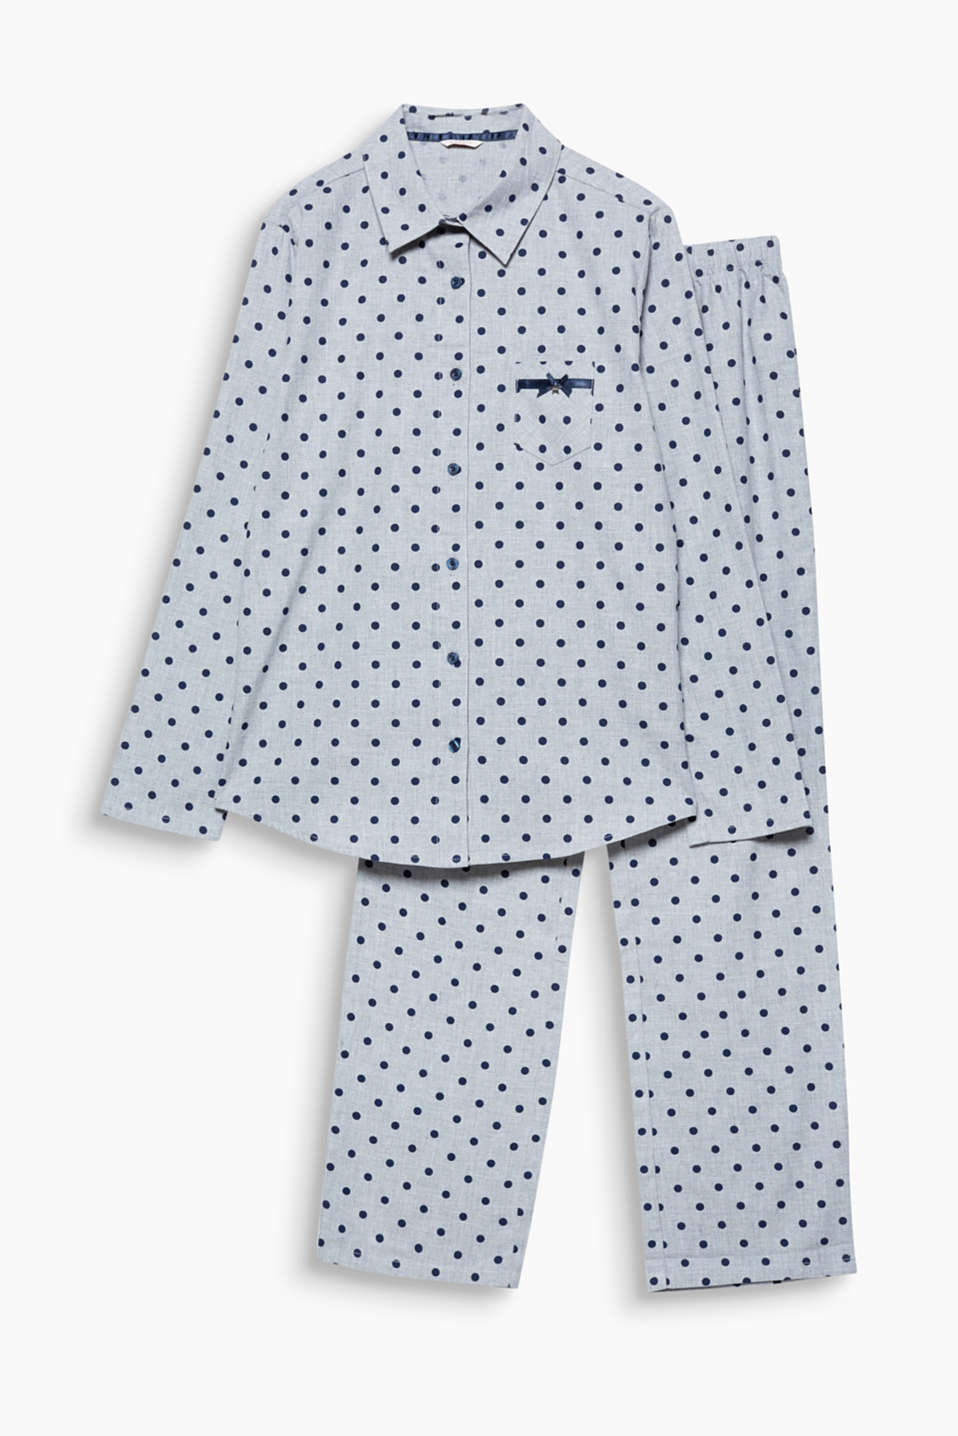 Retro polka dots are equally beguiling by night: pyjamas with a breast pocket and satin detailing